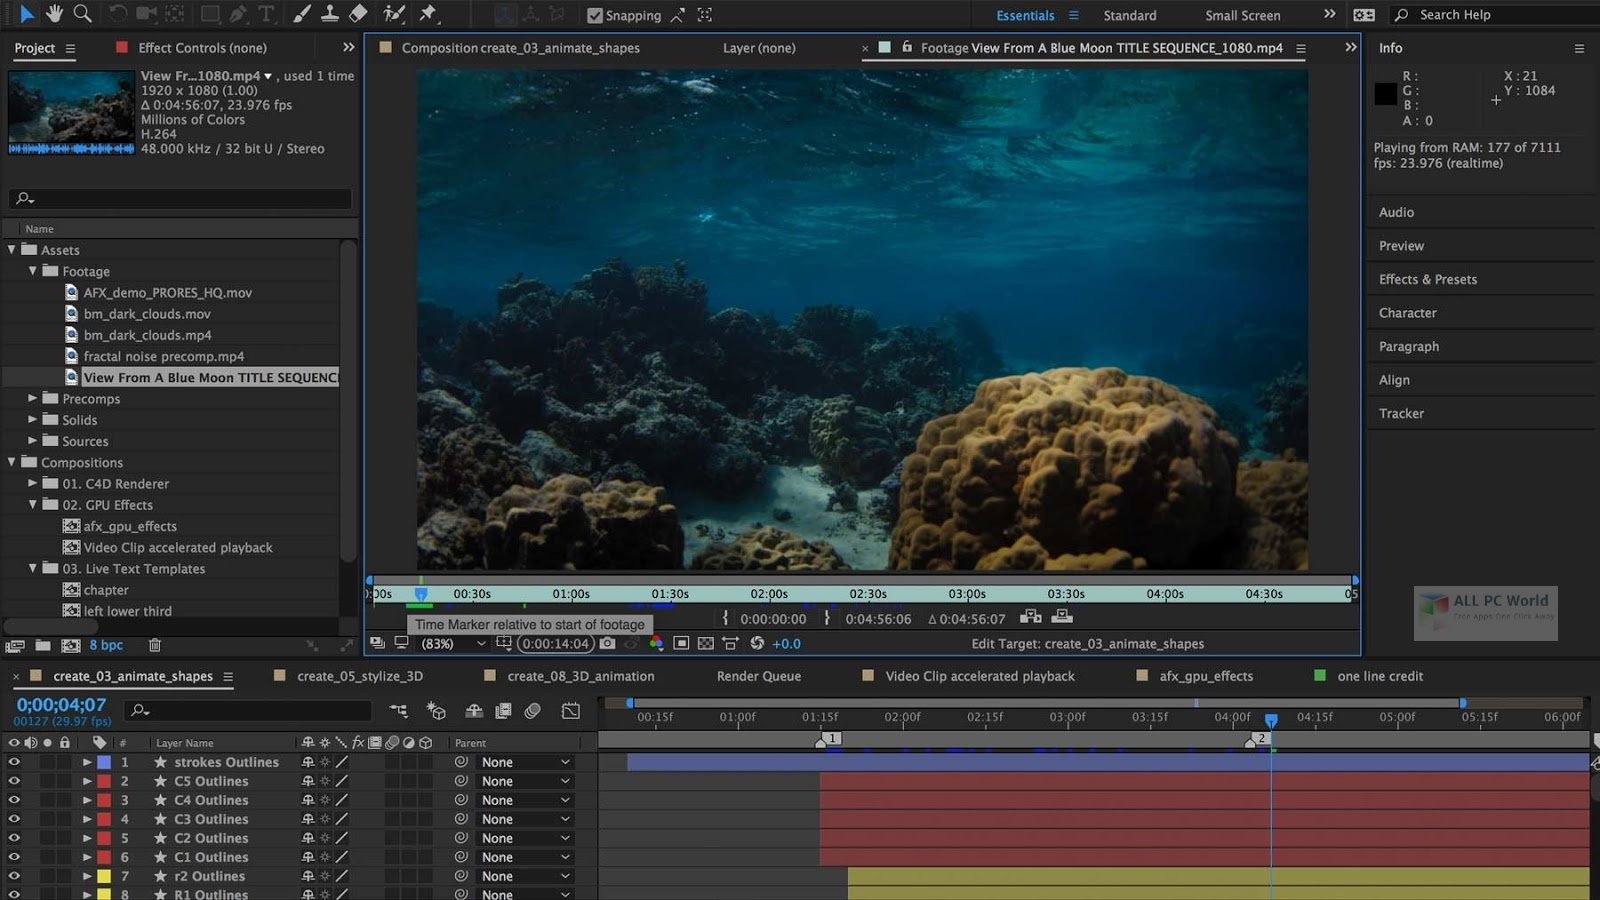 Adobe After Effects CC 2020 v17.0.6.35